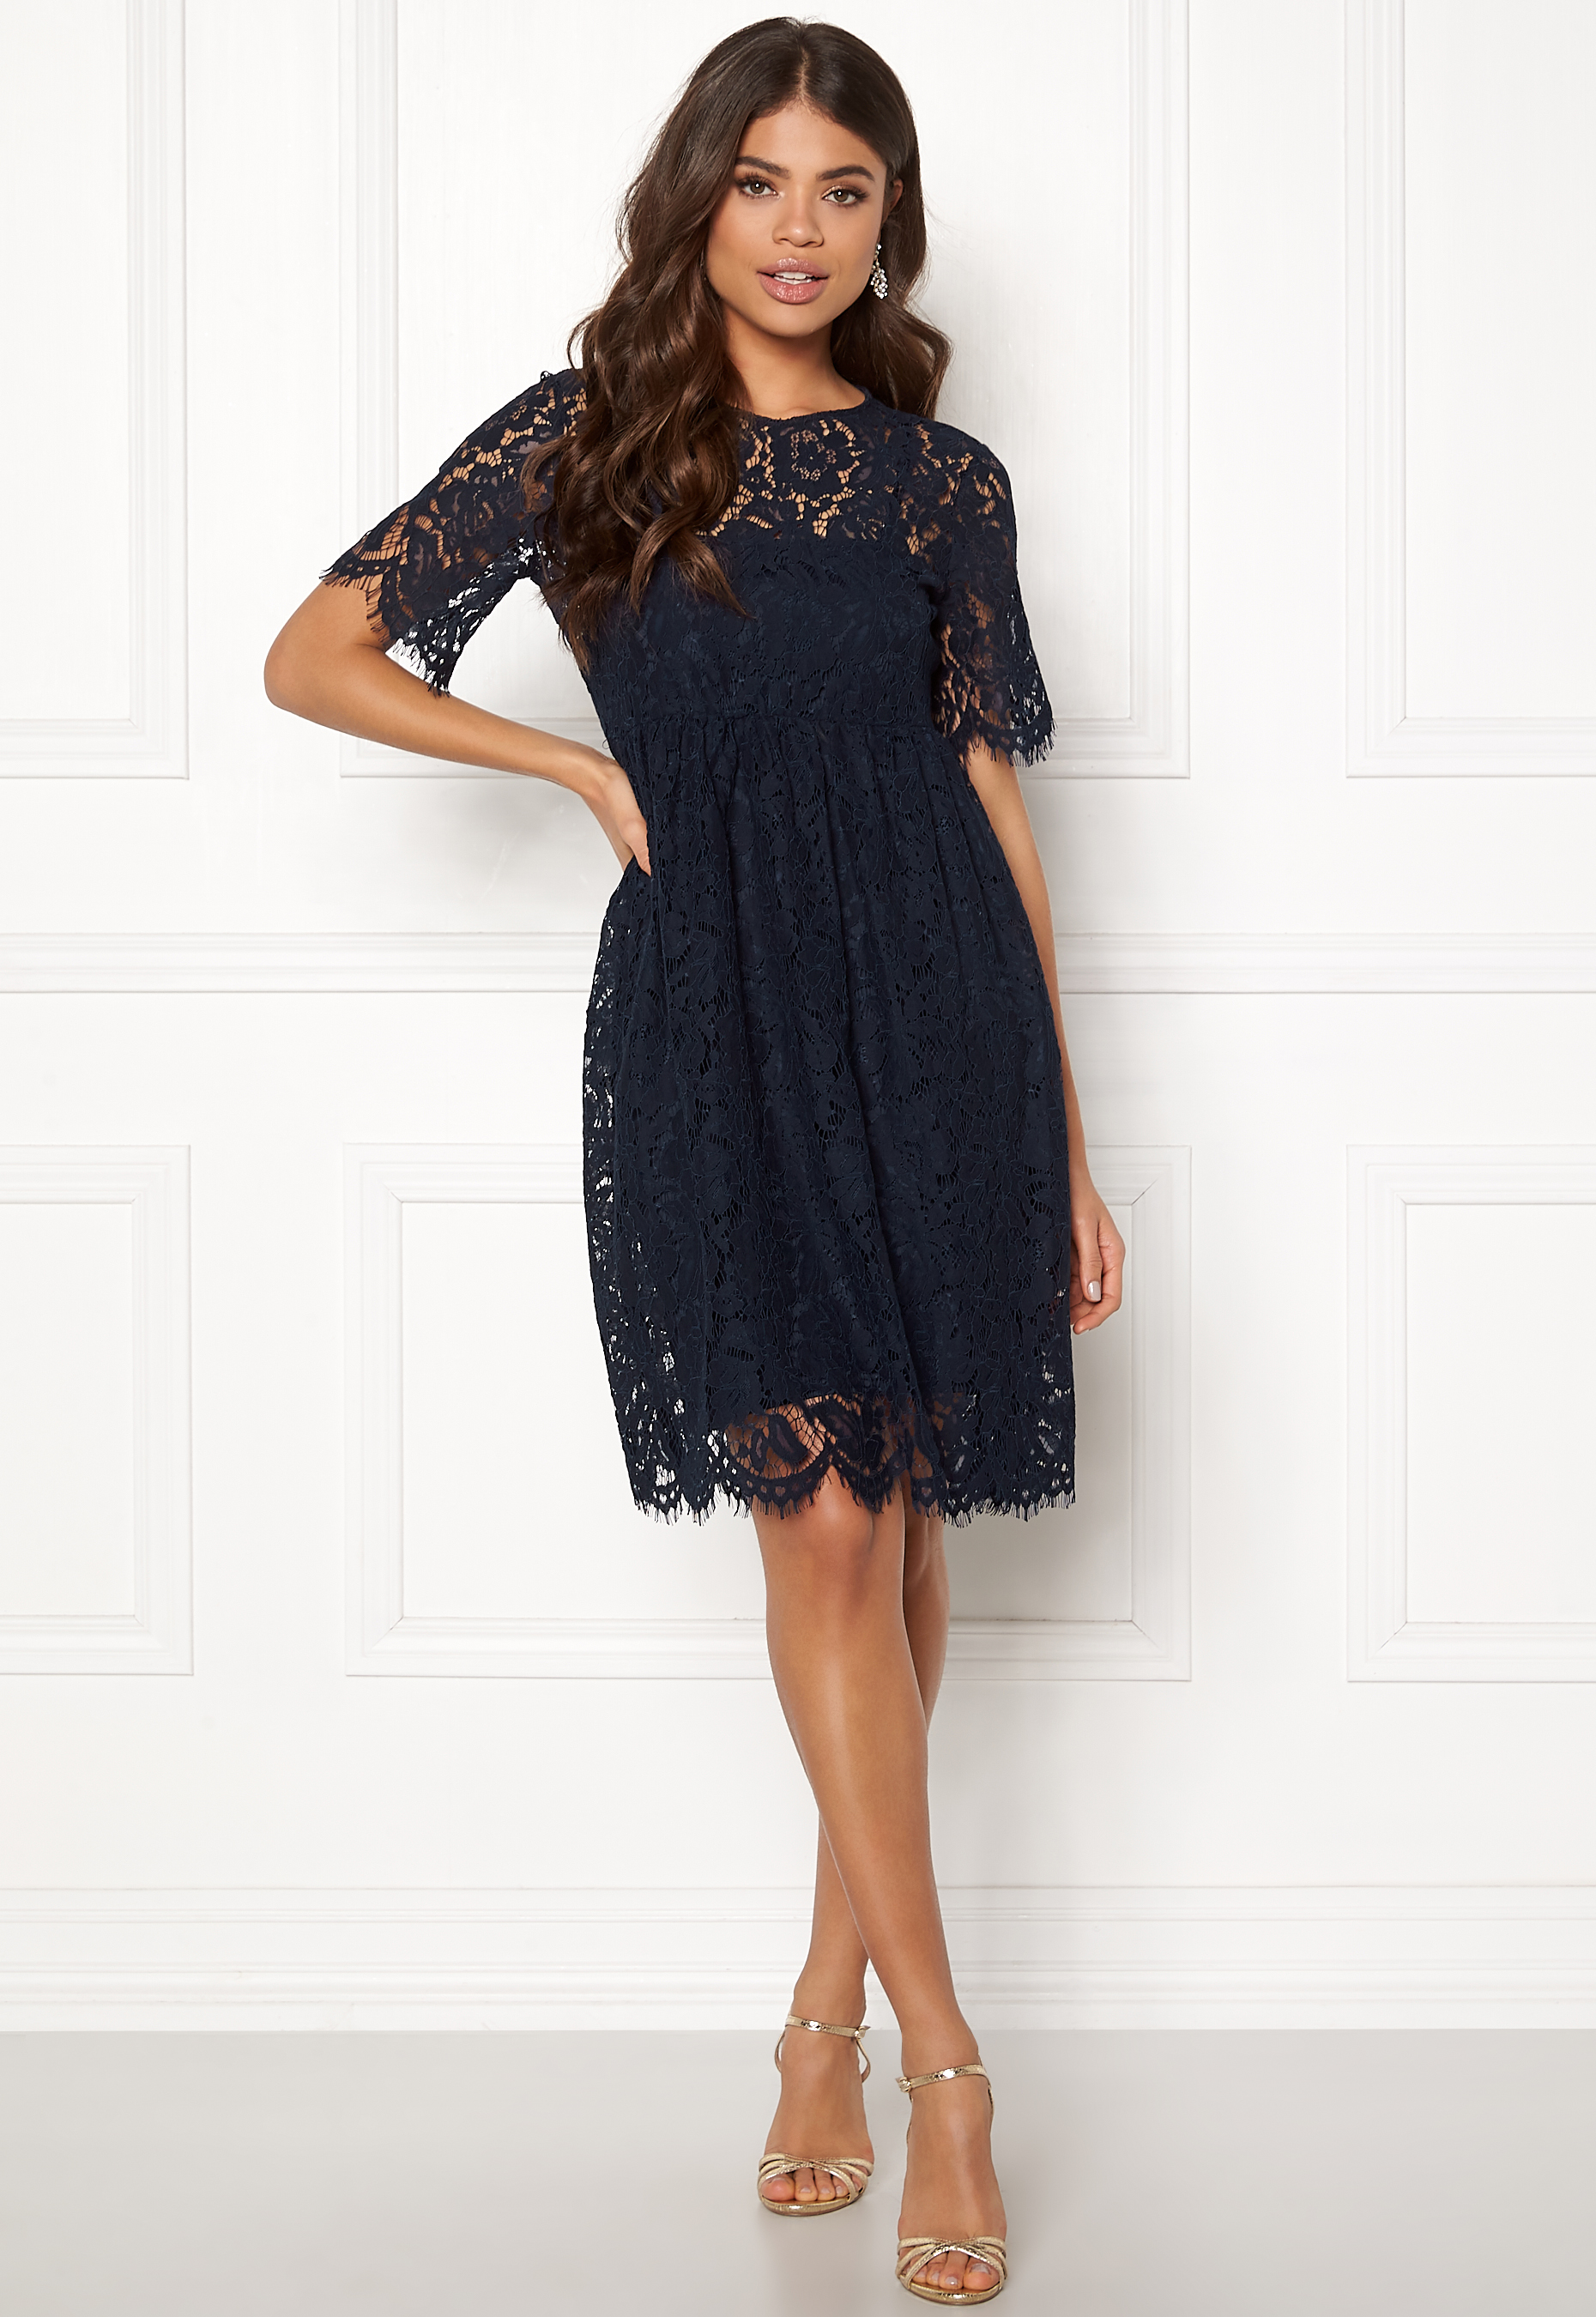 8e179c38c956 Pieces Gaia 2 4 Midi Lace Dress Navy Blazer - Bubbleroom